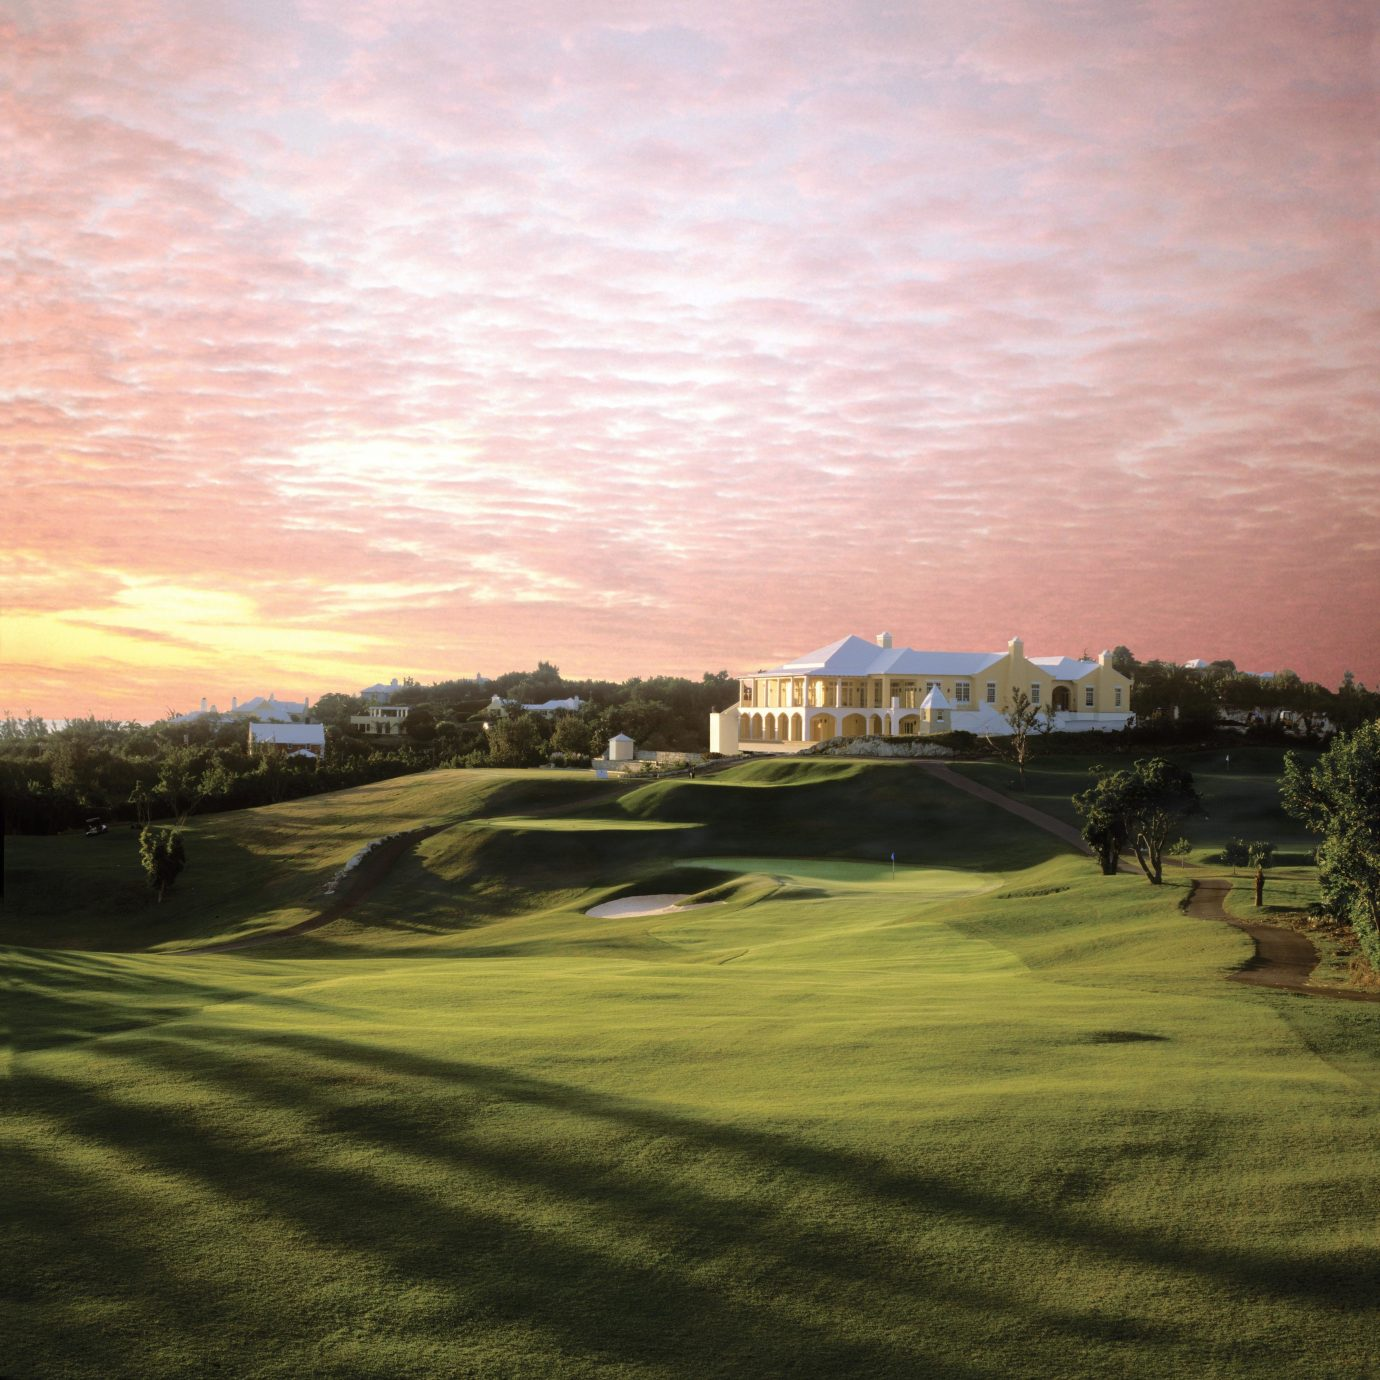 Beachfront Elegant Exterior Golf Grounds Hotels Island Scenic views Sport Sunset Tropical Waterfront sky grass structure sport venue golf course cloud field golf club Nature sports lawn dusk day